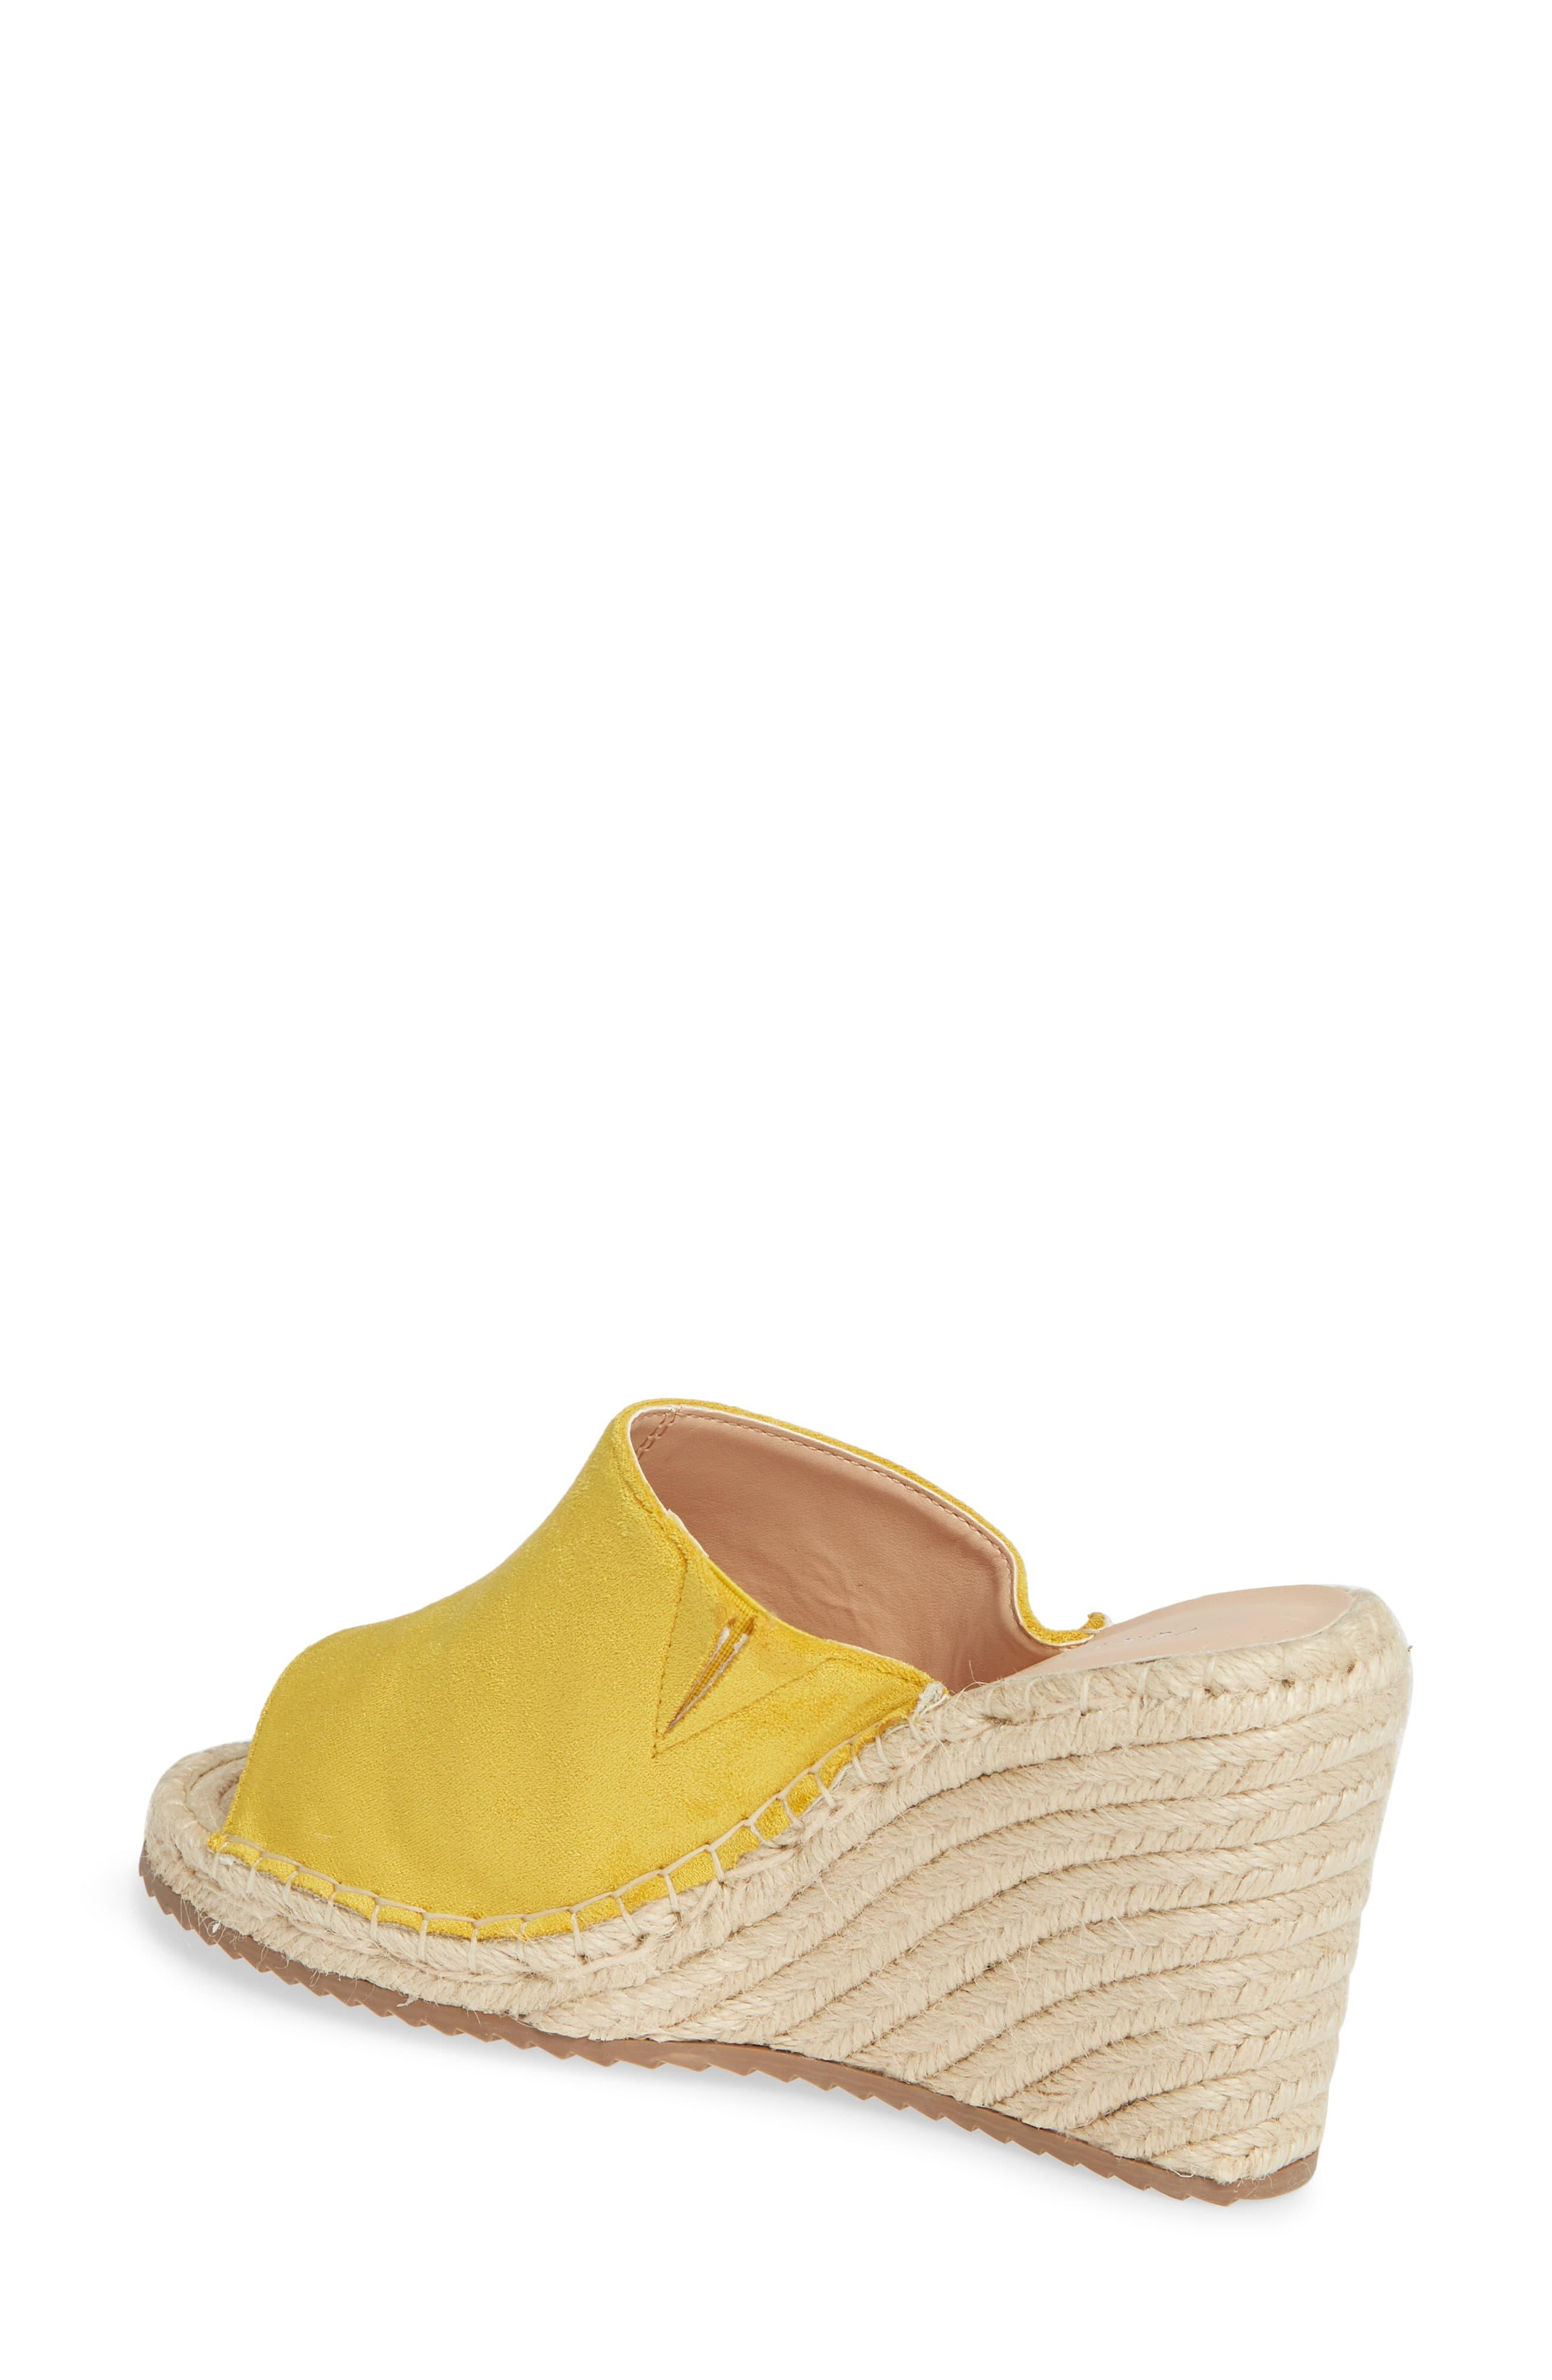 6b268634c93 Women's Yellow Mused Espadrille Wedge Slide Sandal